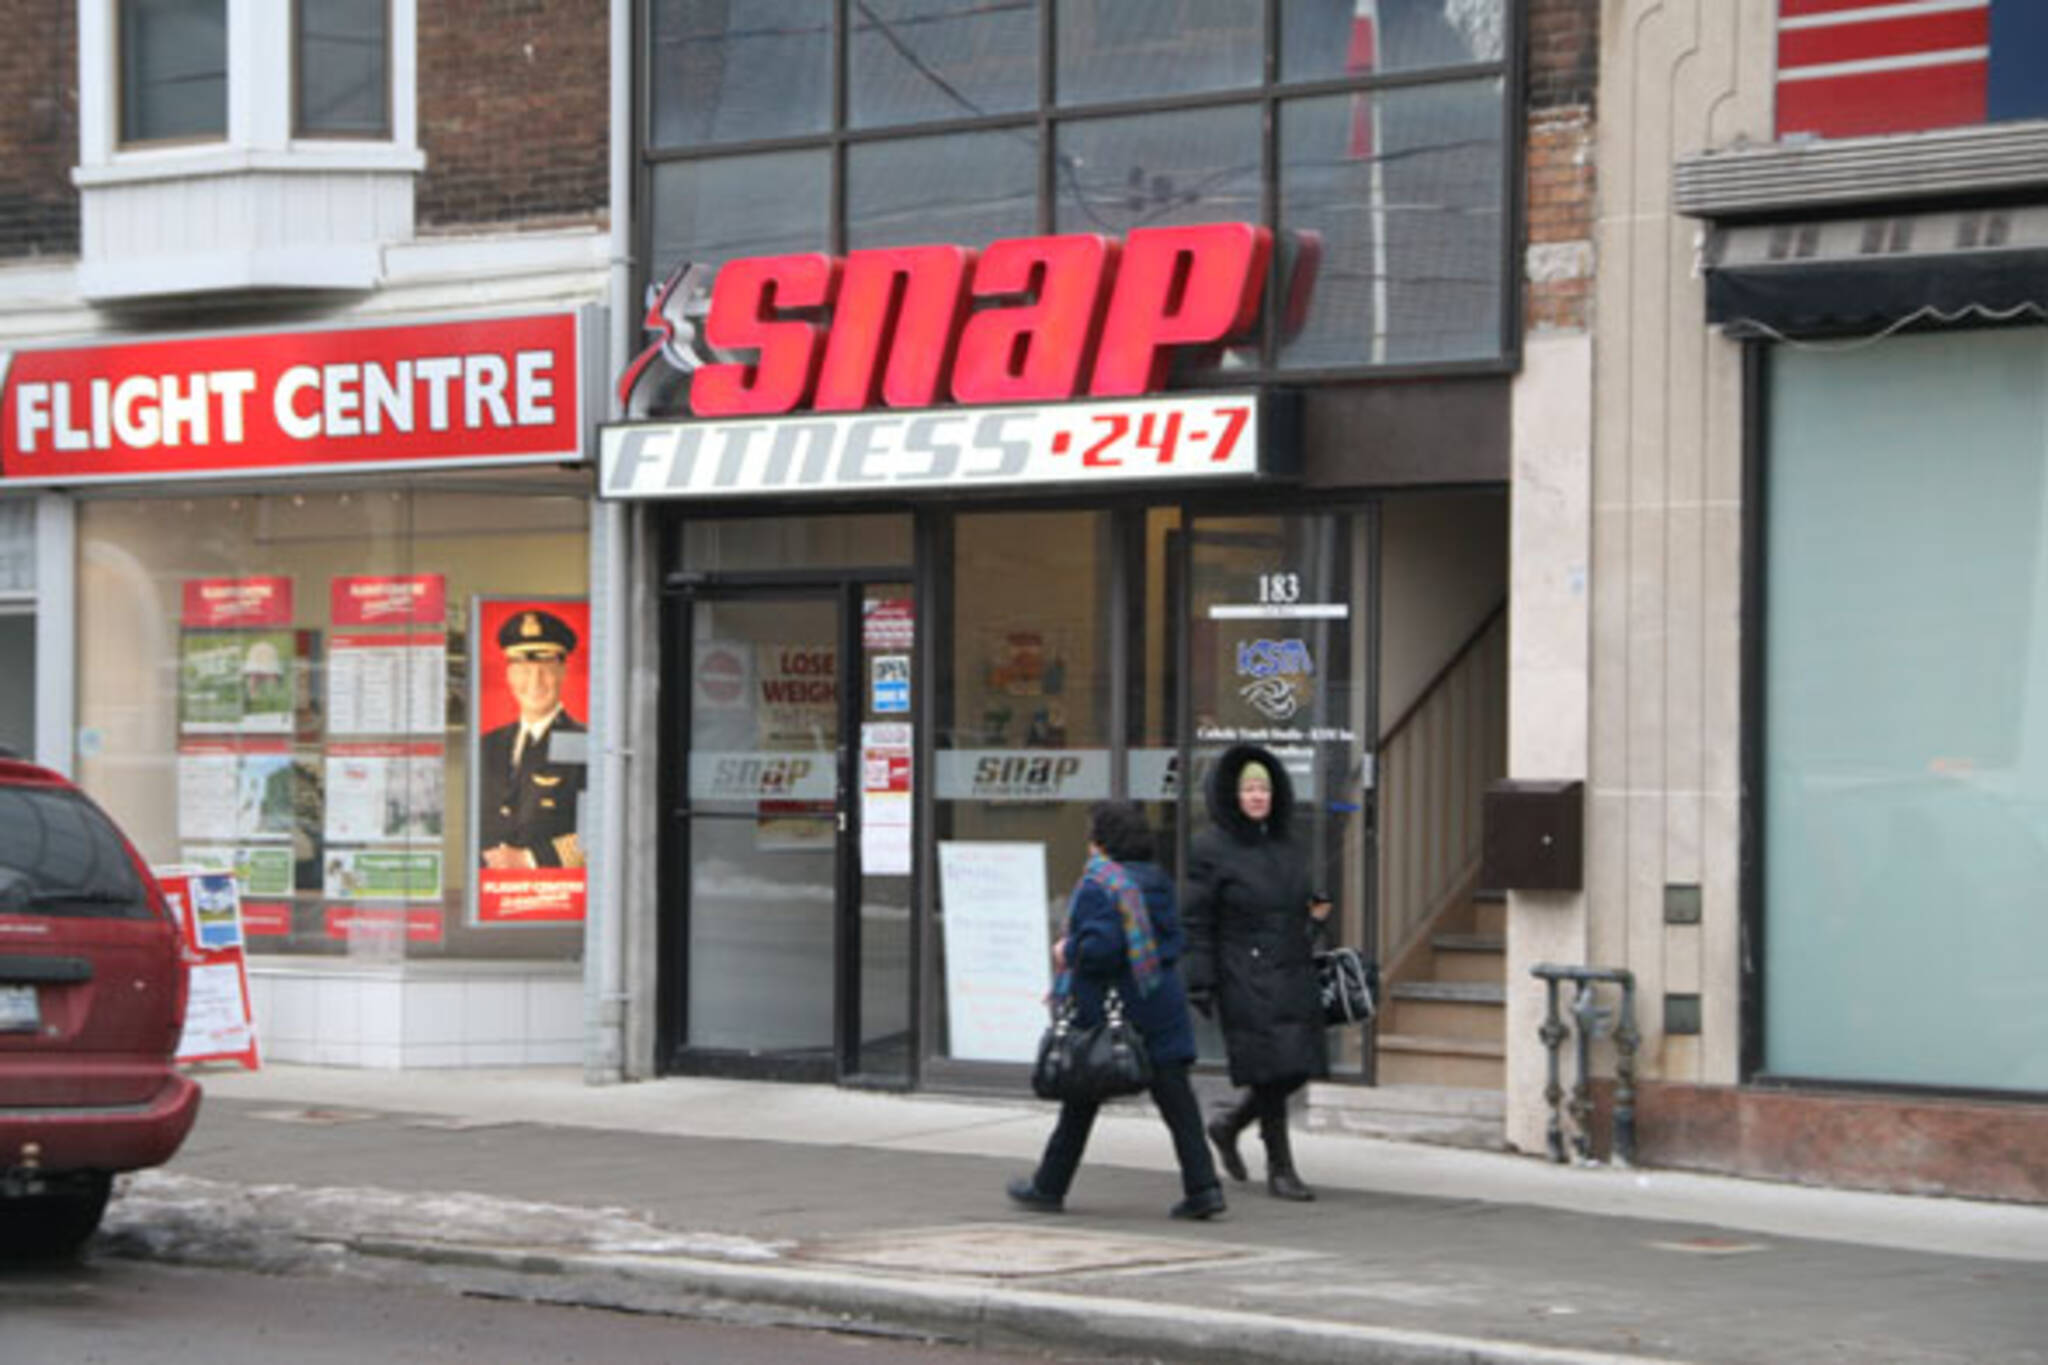 Snap Fitness Bethlehem PA locations, hours, phone number, map and driving directions.